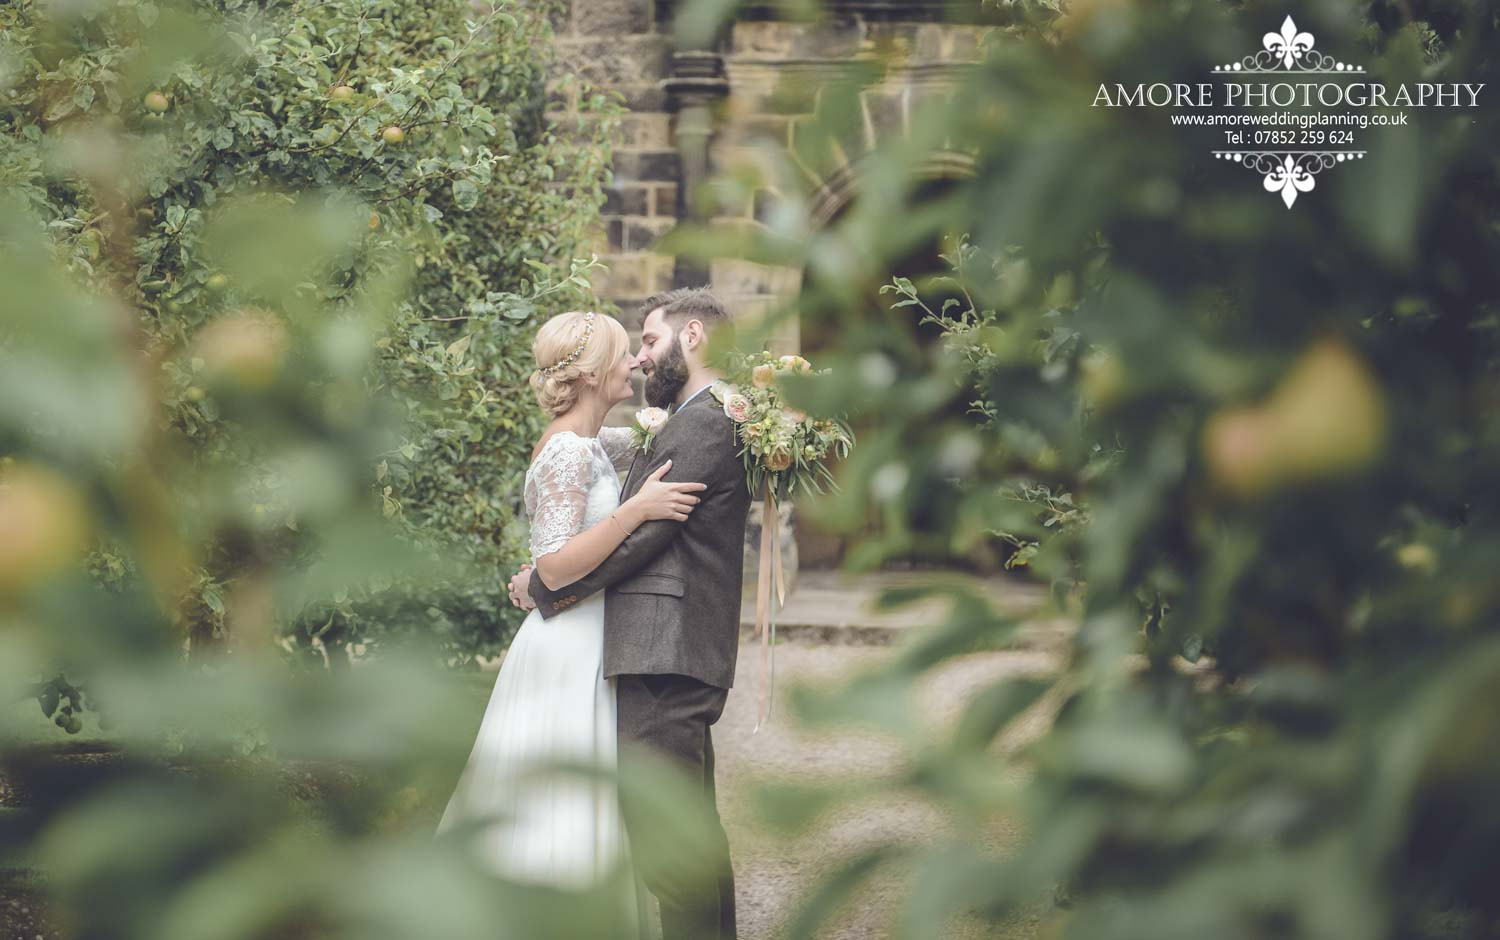 Vintage Wedding Photographer Wakefield North Yorkshire Leeds Wedding Photography Vintage Rustic Barn Weddings (108)